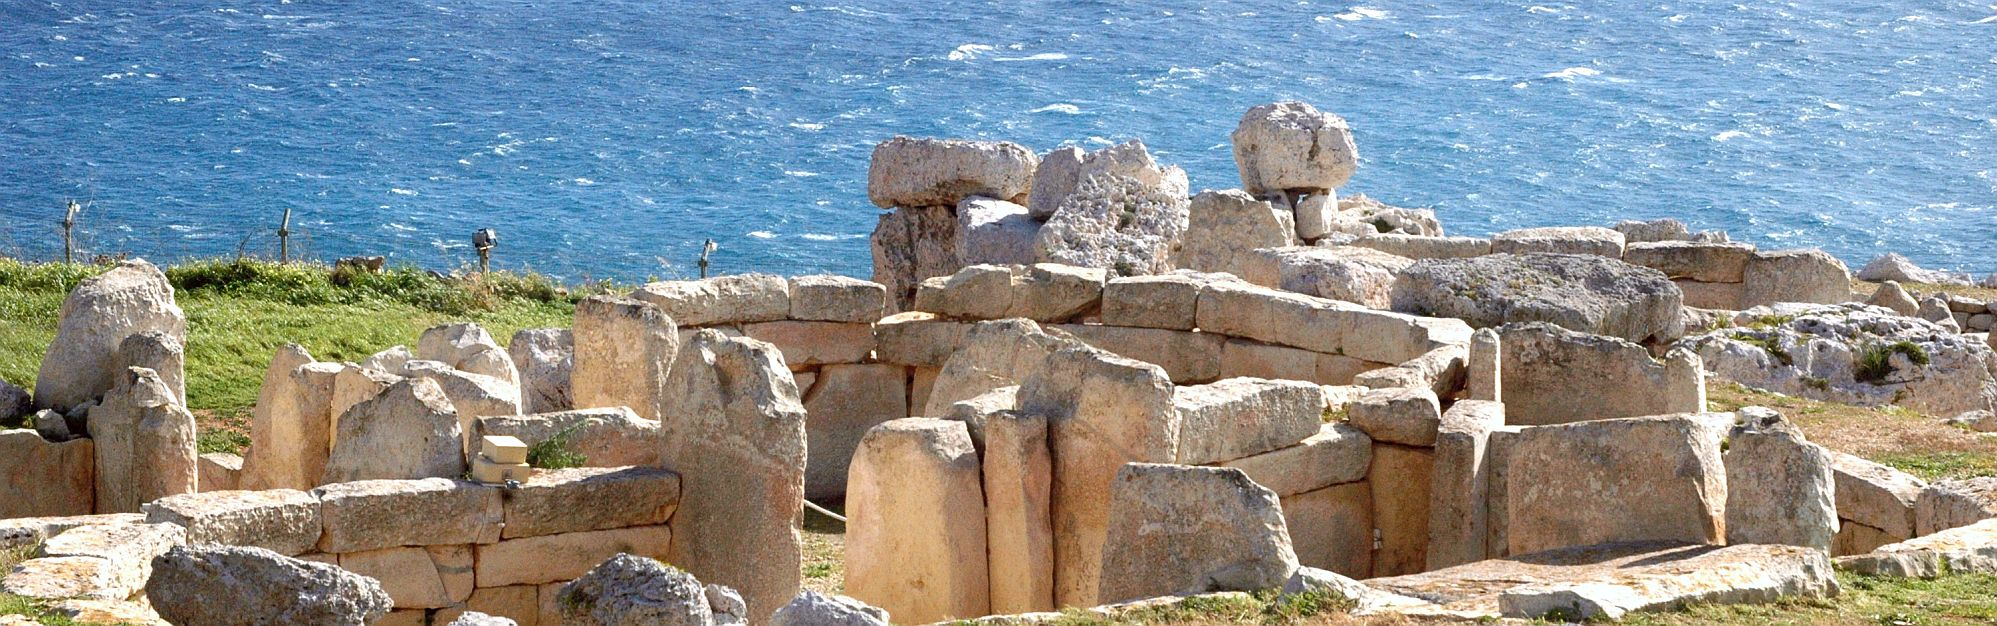 MalDia-08-17-02-21-The-Mnajdra-Neolithic-Temple-one-of-a-number-found-in-Malta-and-Gozo